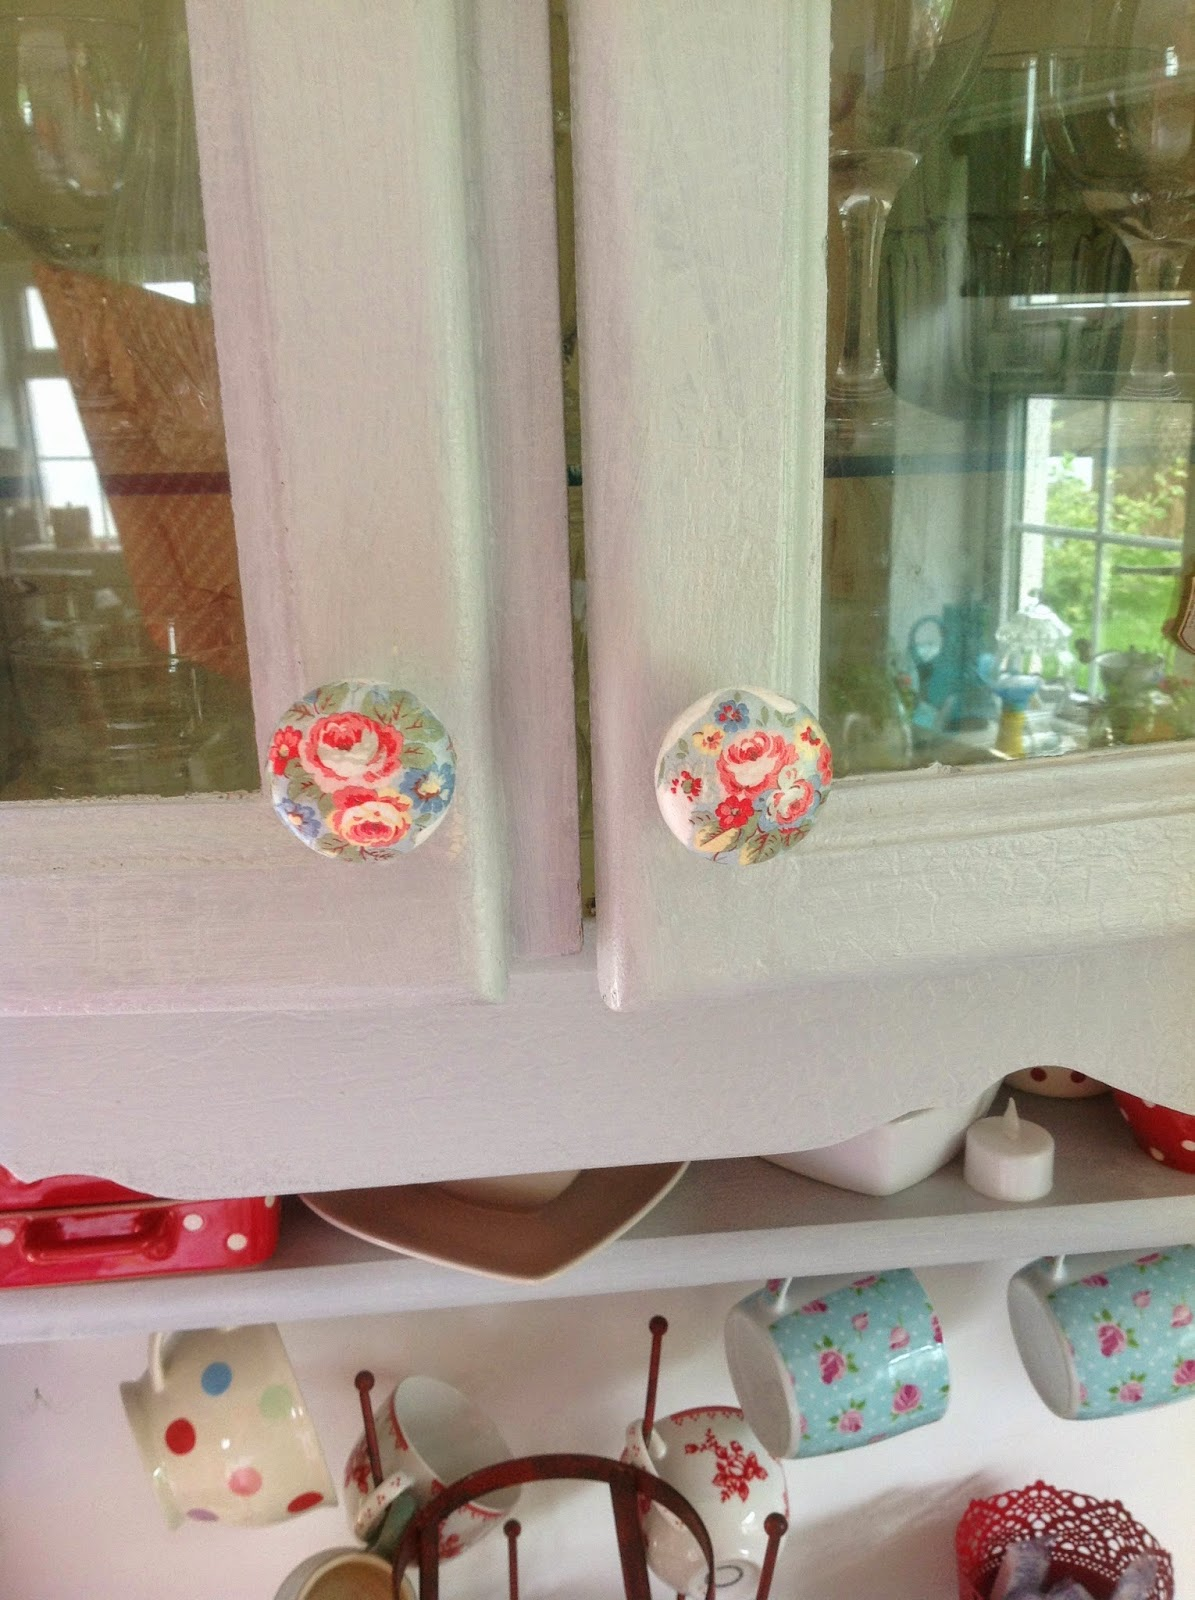 Handmade christmas robin decoration claire hurd design - Finally Attach Them To The Cubpoard Stand Back And Smile At Your Handiwork O